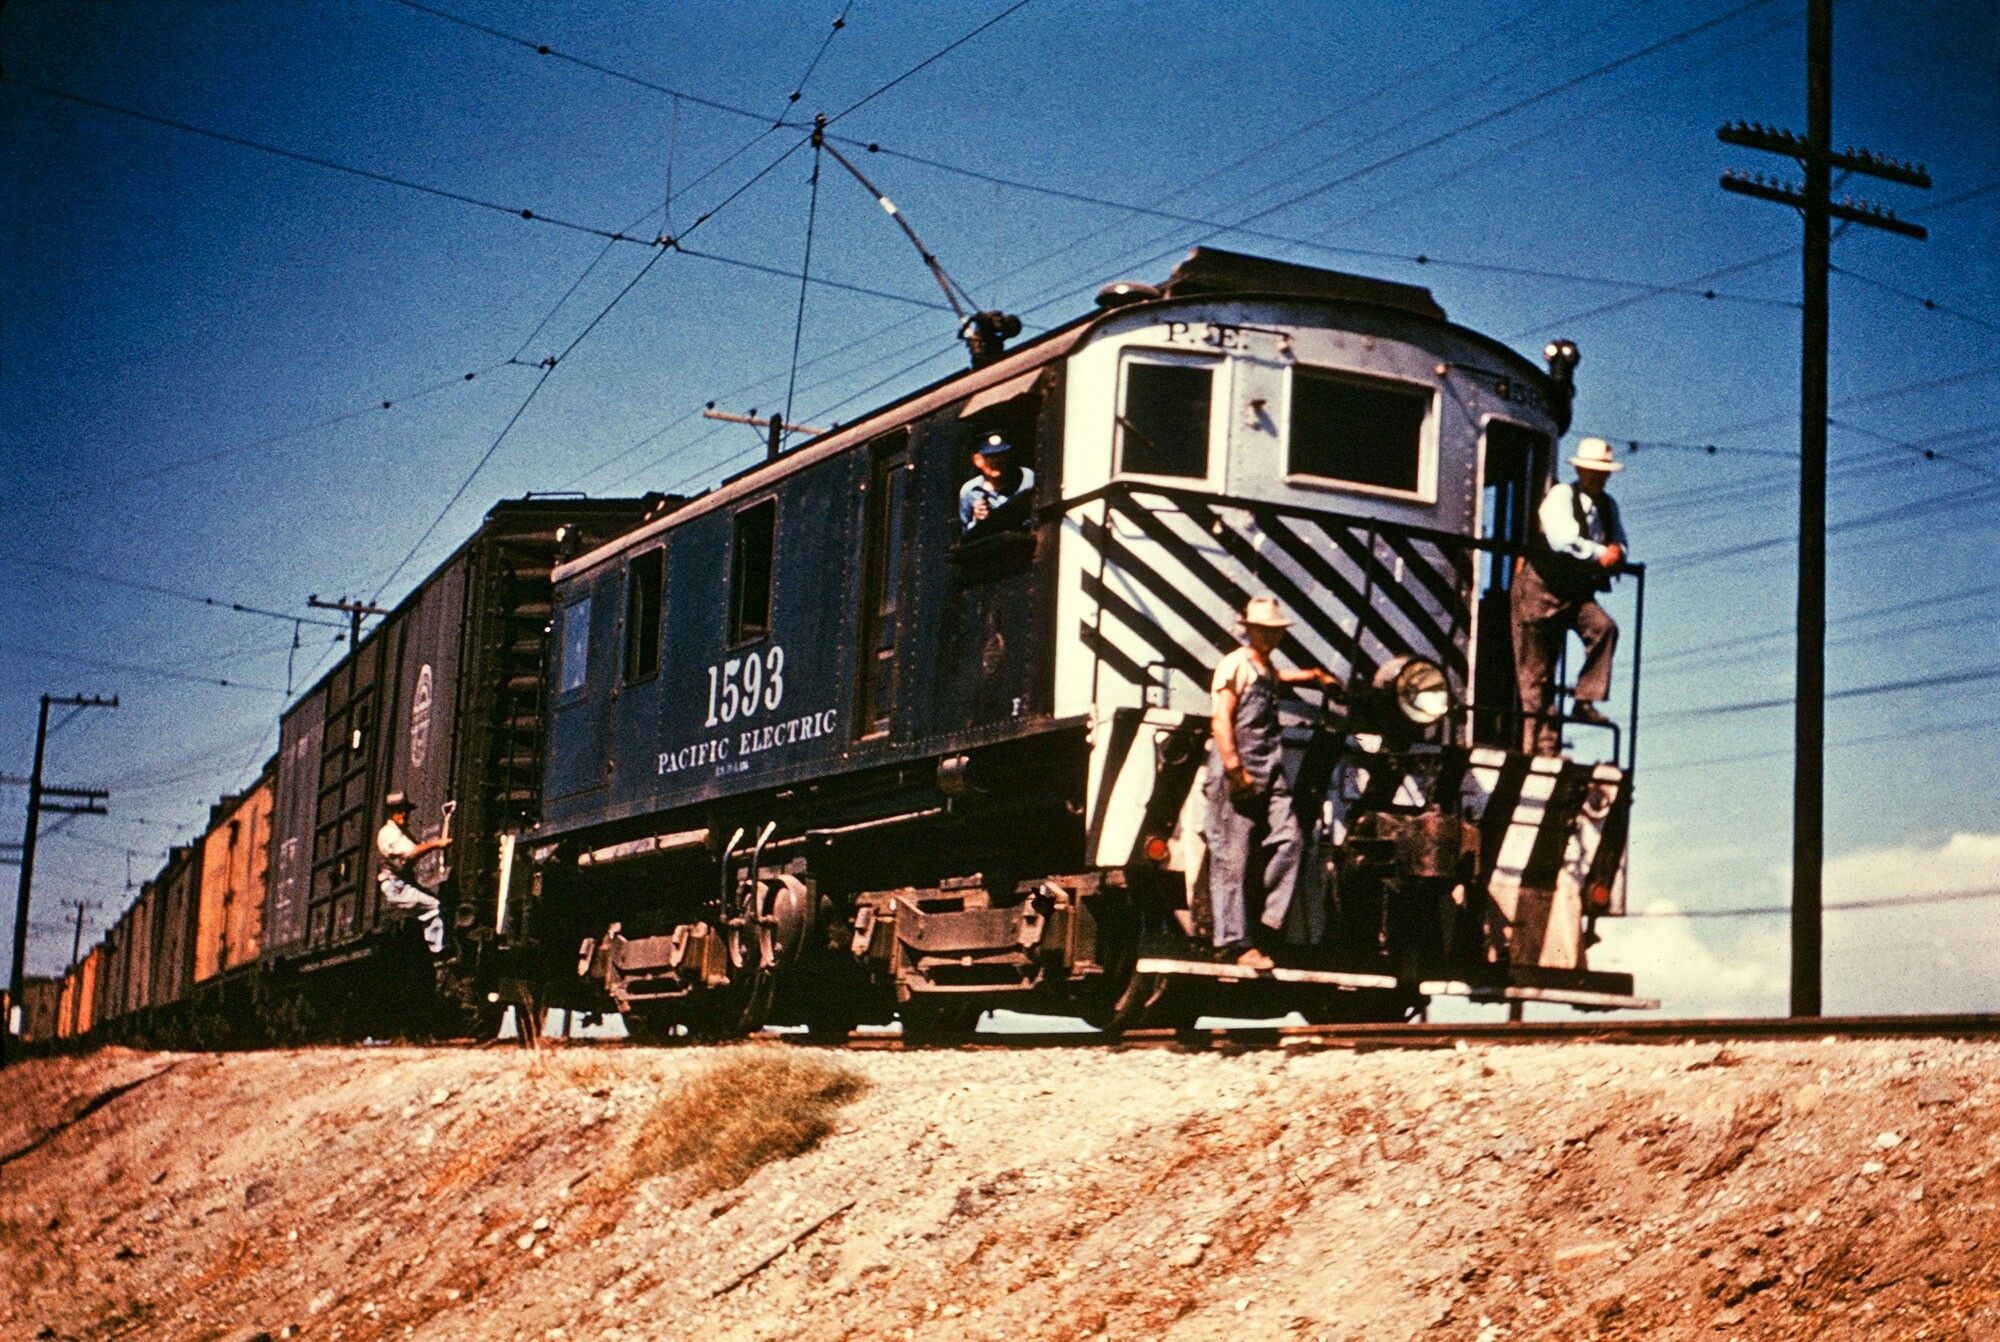 Pacific Electric Freight Red Car Electric Train Cities In Los Angeles